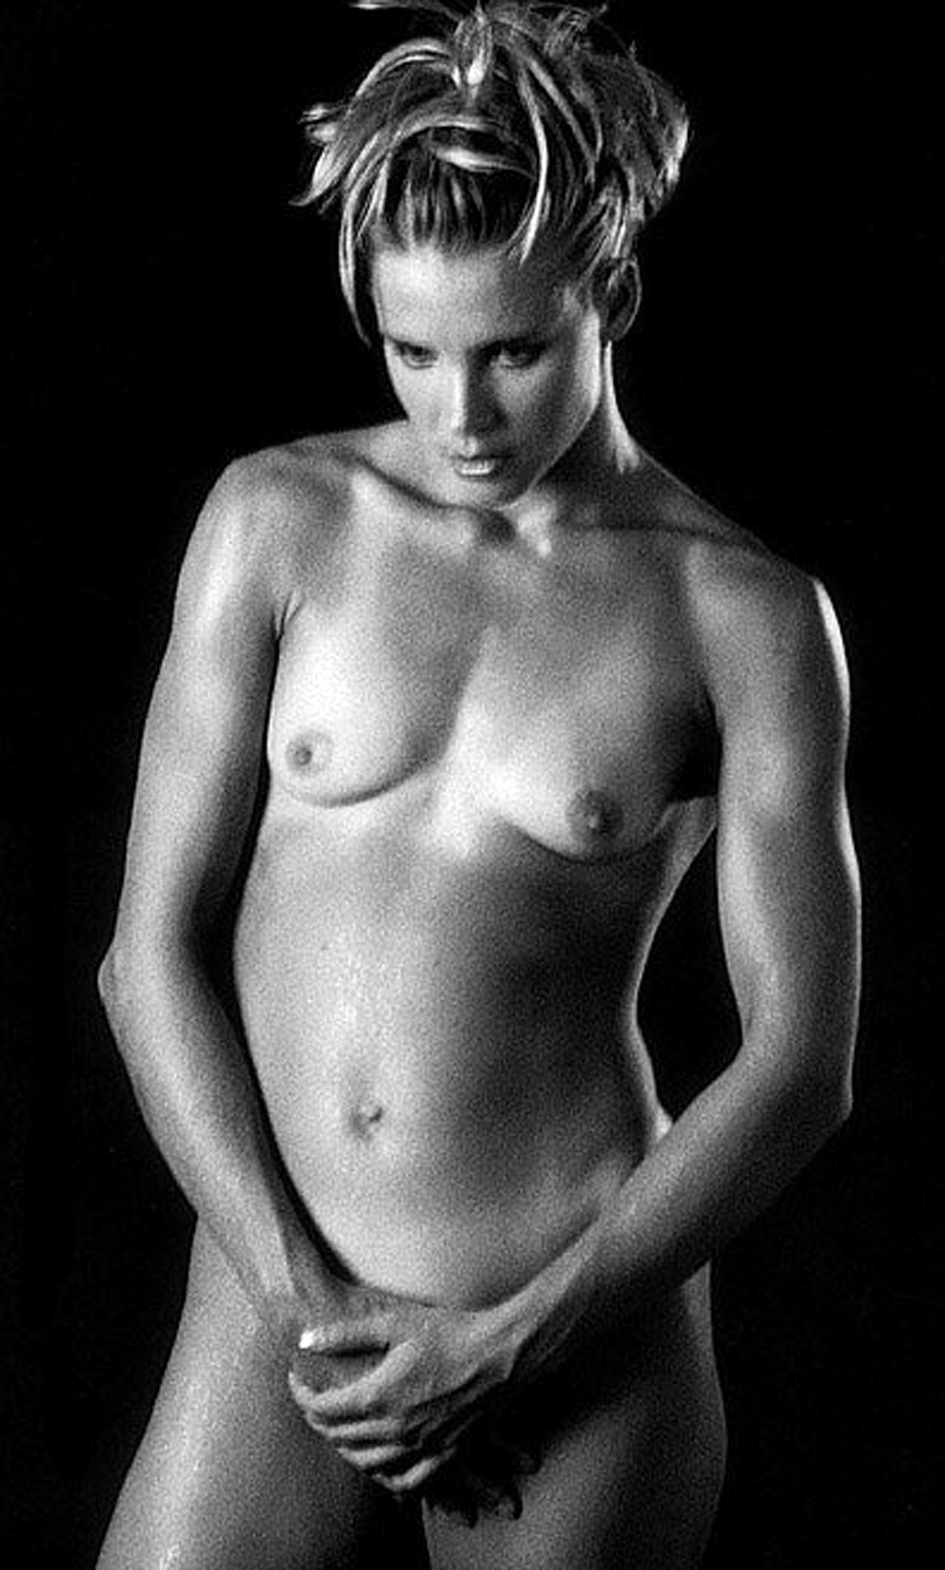 veronica from road rules nude